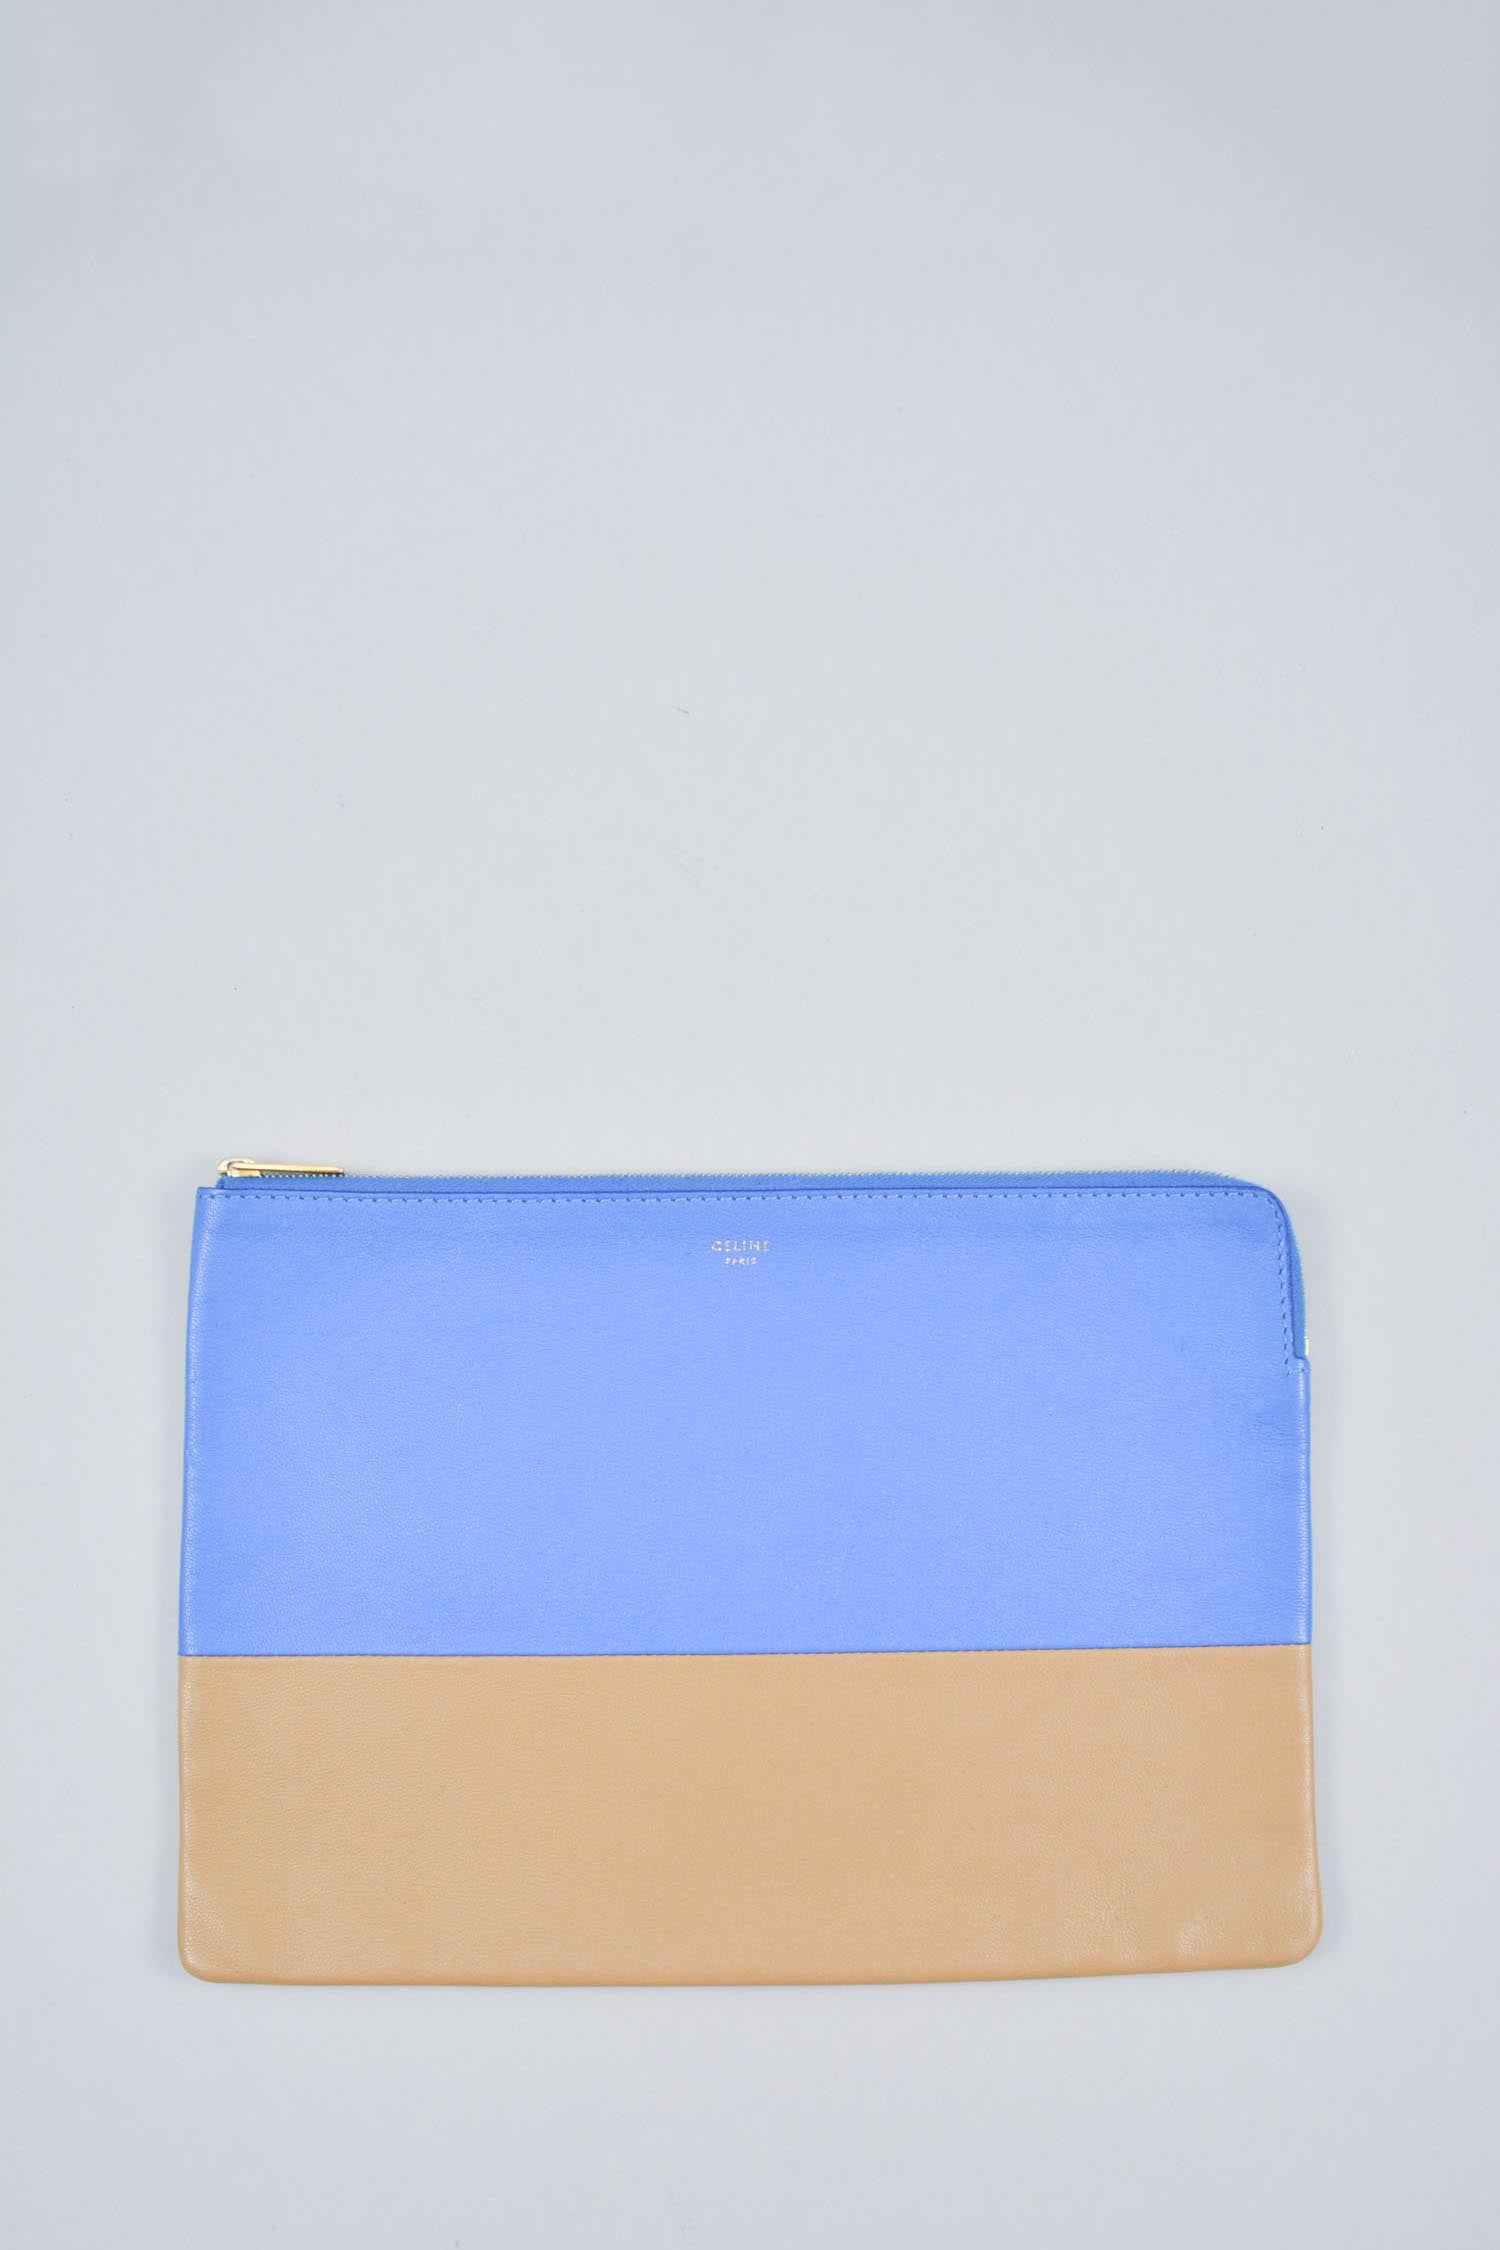 Celine Blue/Beige Leather Solo Zip Pouch